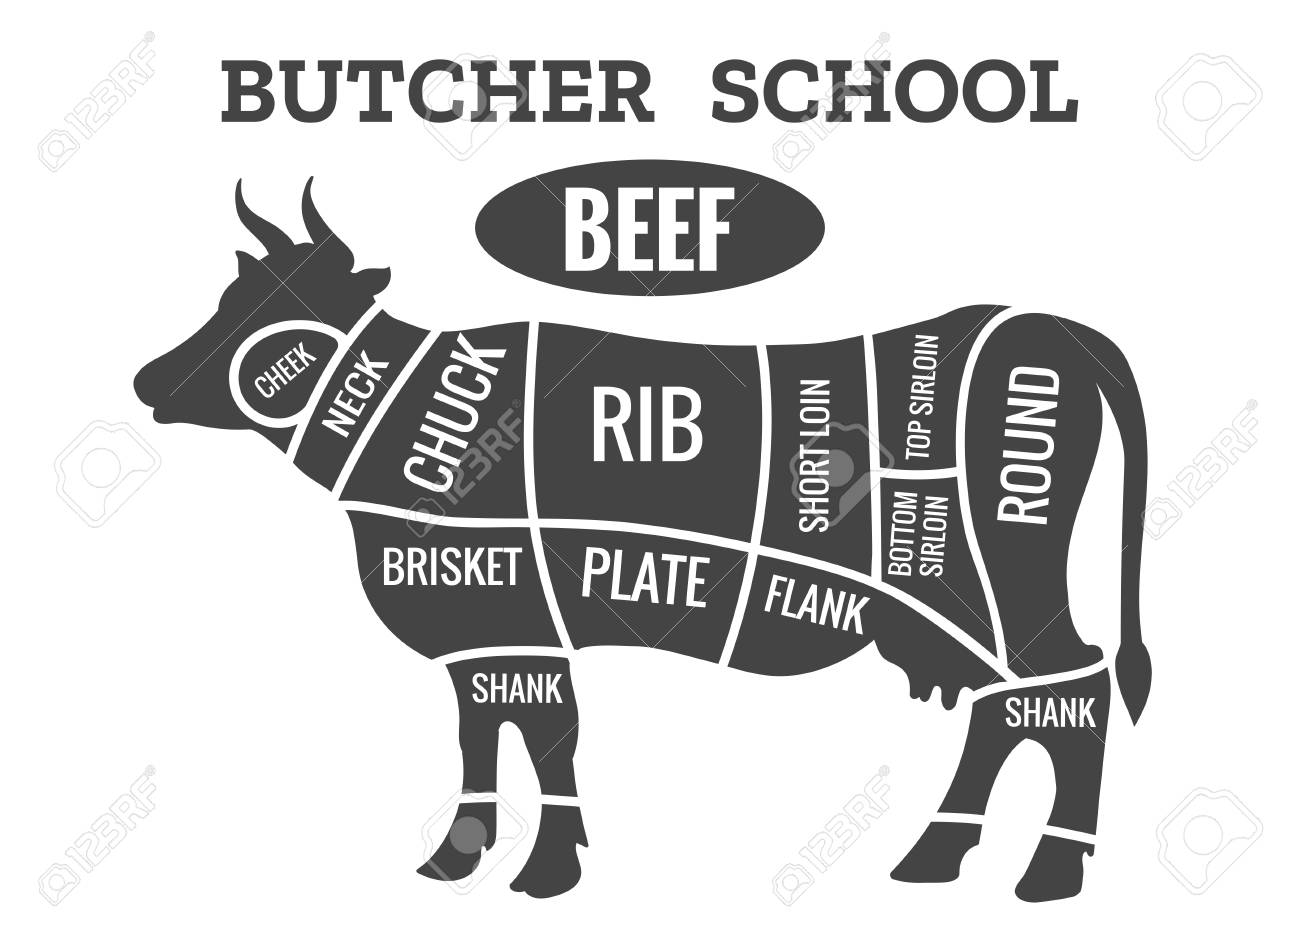 cow butcher diagram cutting beef meat or steak cuts diagram Beef Knuckle Diagram cow butcher diagram cutting beef meat or steak cuts diagram chart for restaurant poster vector